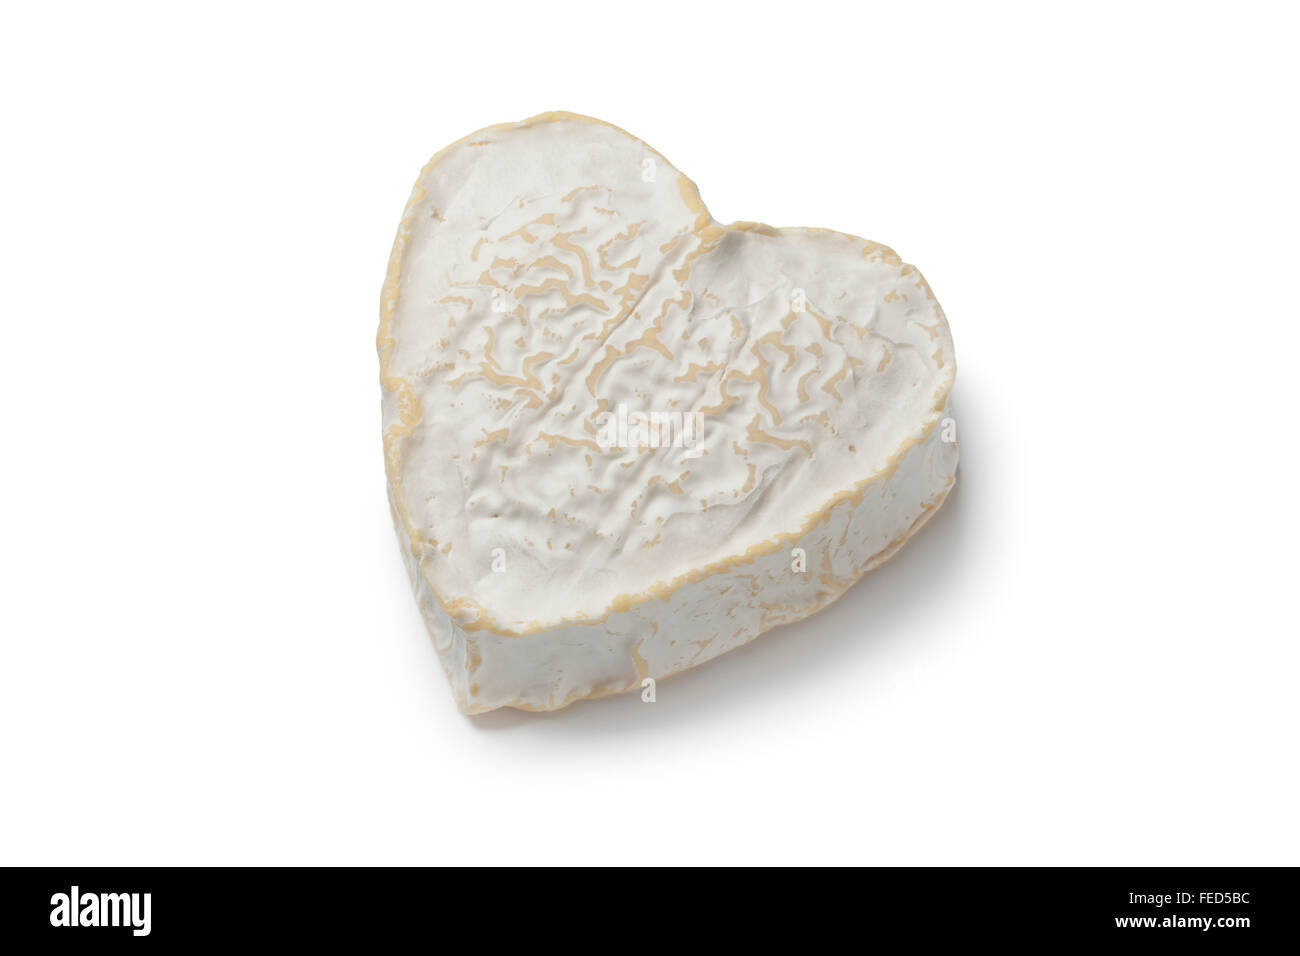 Whole Heart shaped Neufchatel cheese on white background - Stock Image